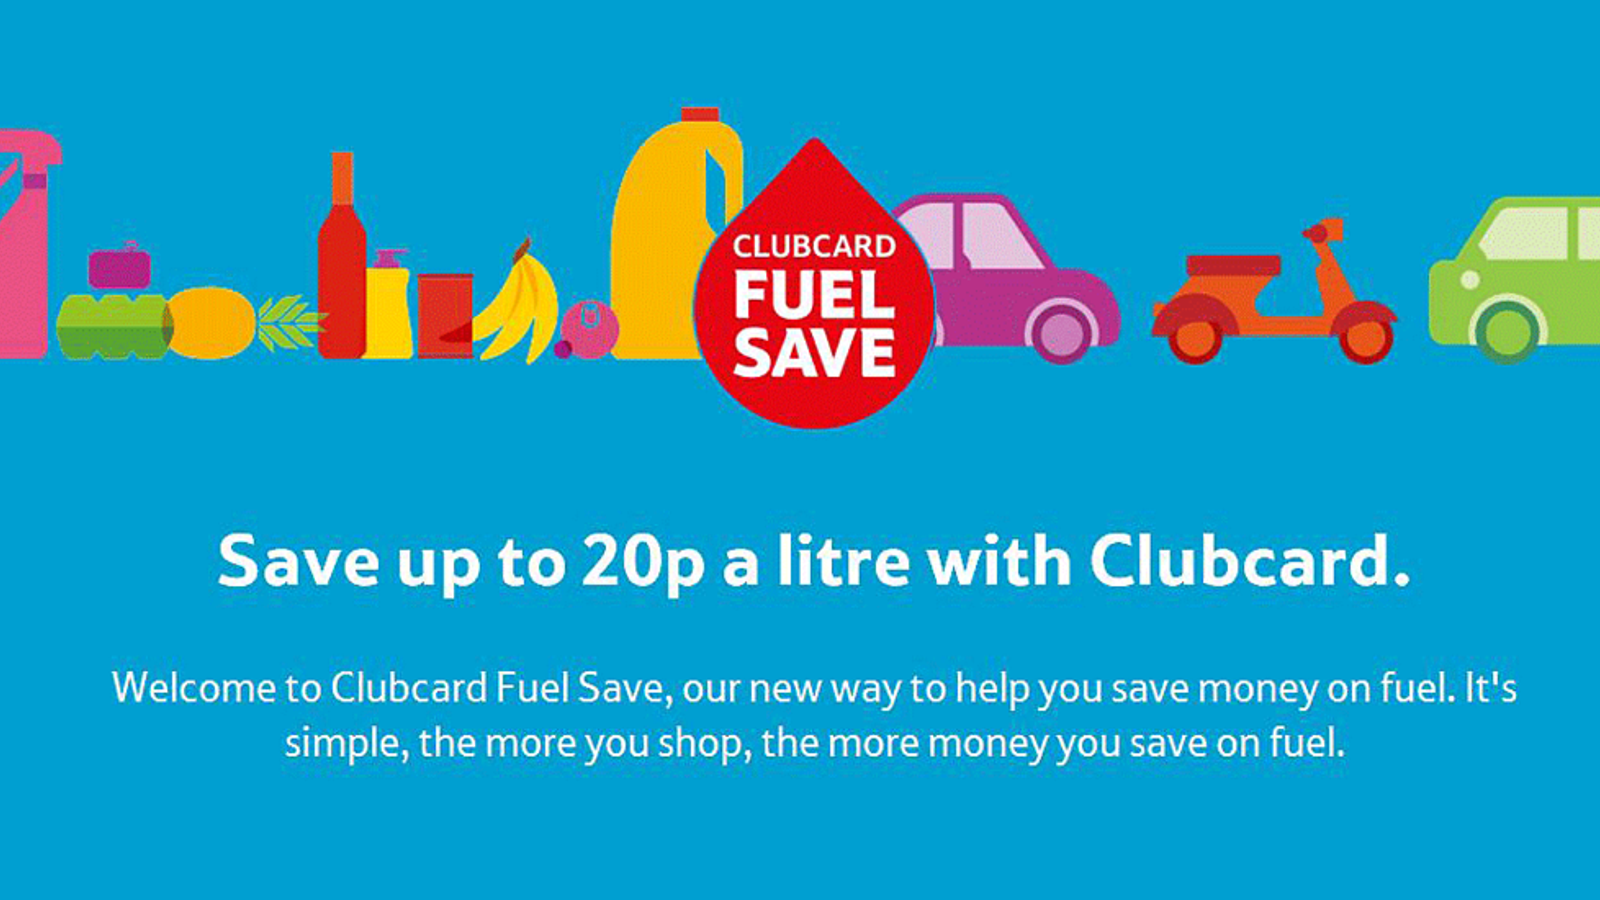 Tesco Clubcard Fuel Save